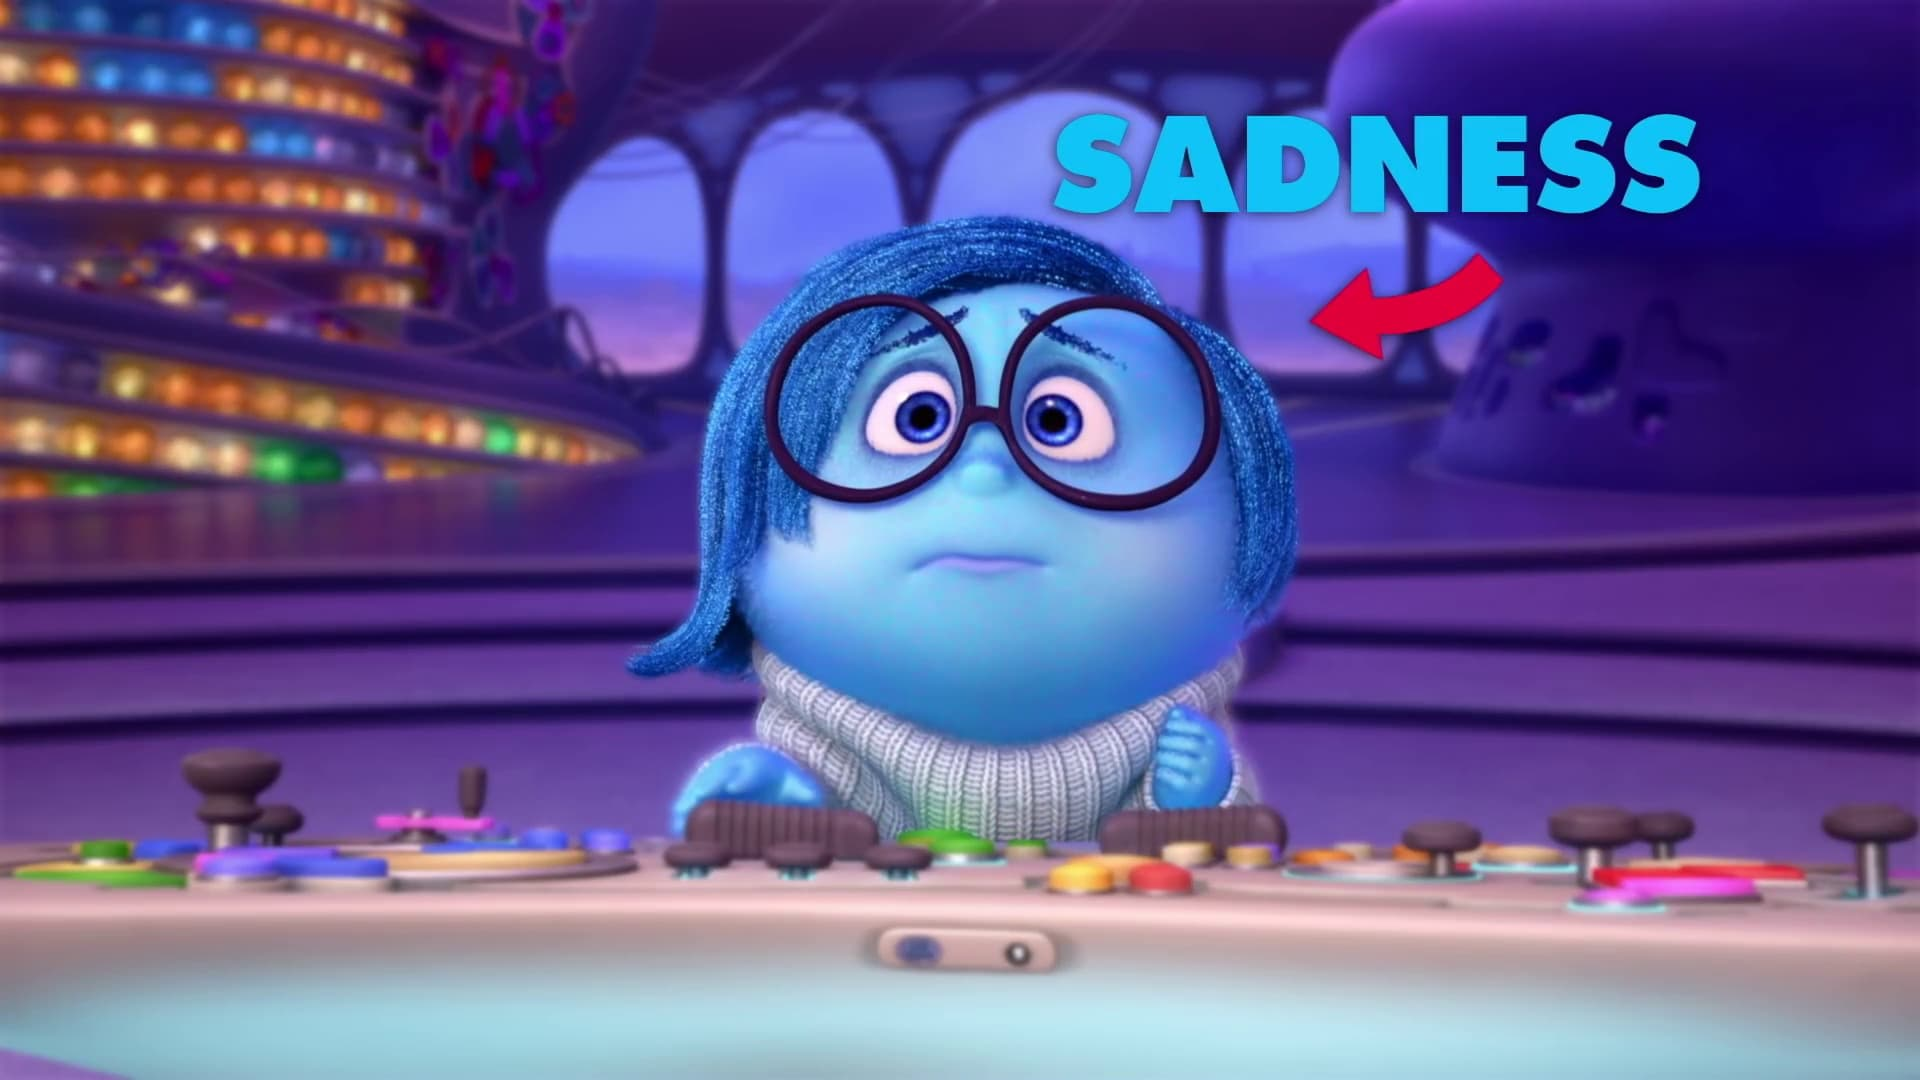 17 Inside Out Sadness Wallpapers Hd Download